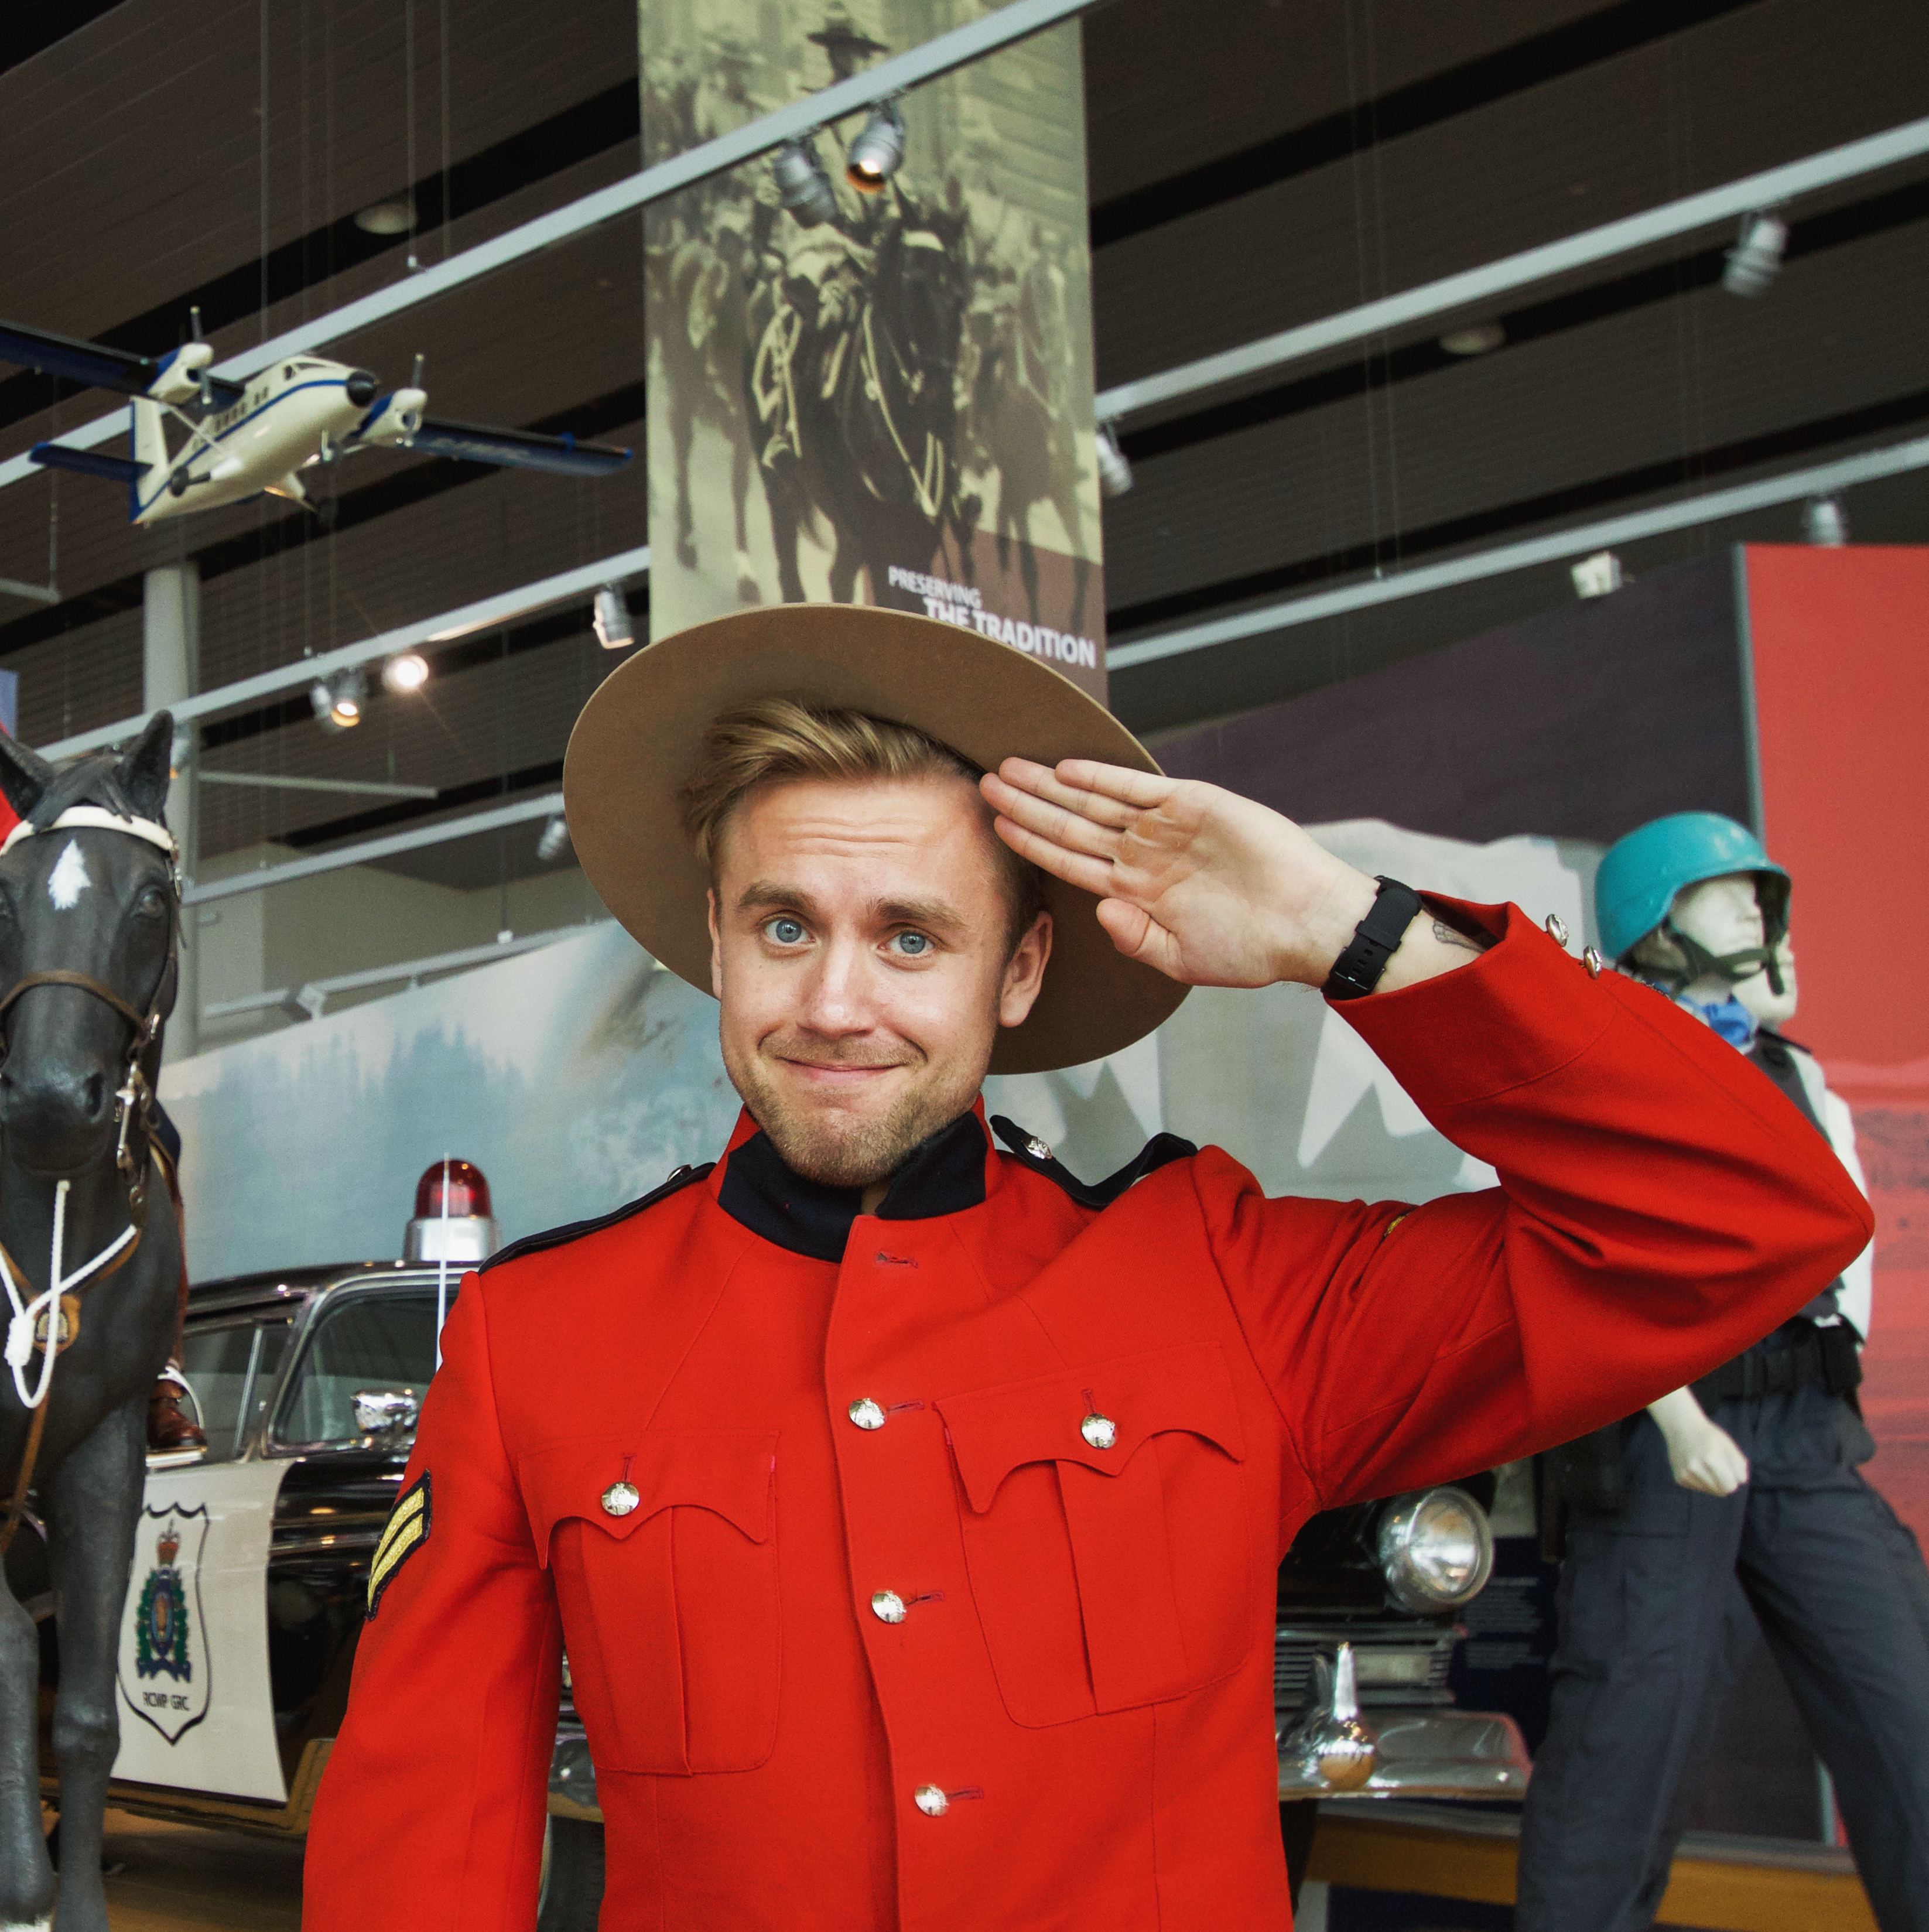 A Day in the Life of a Mountie - The RCMP Depot Division and Heritage Centre